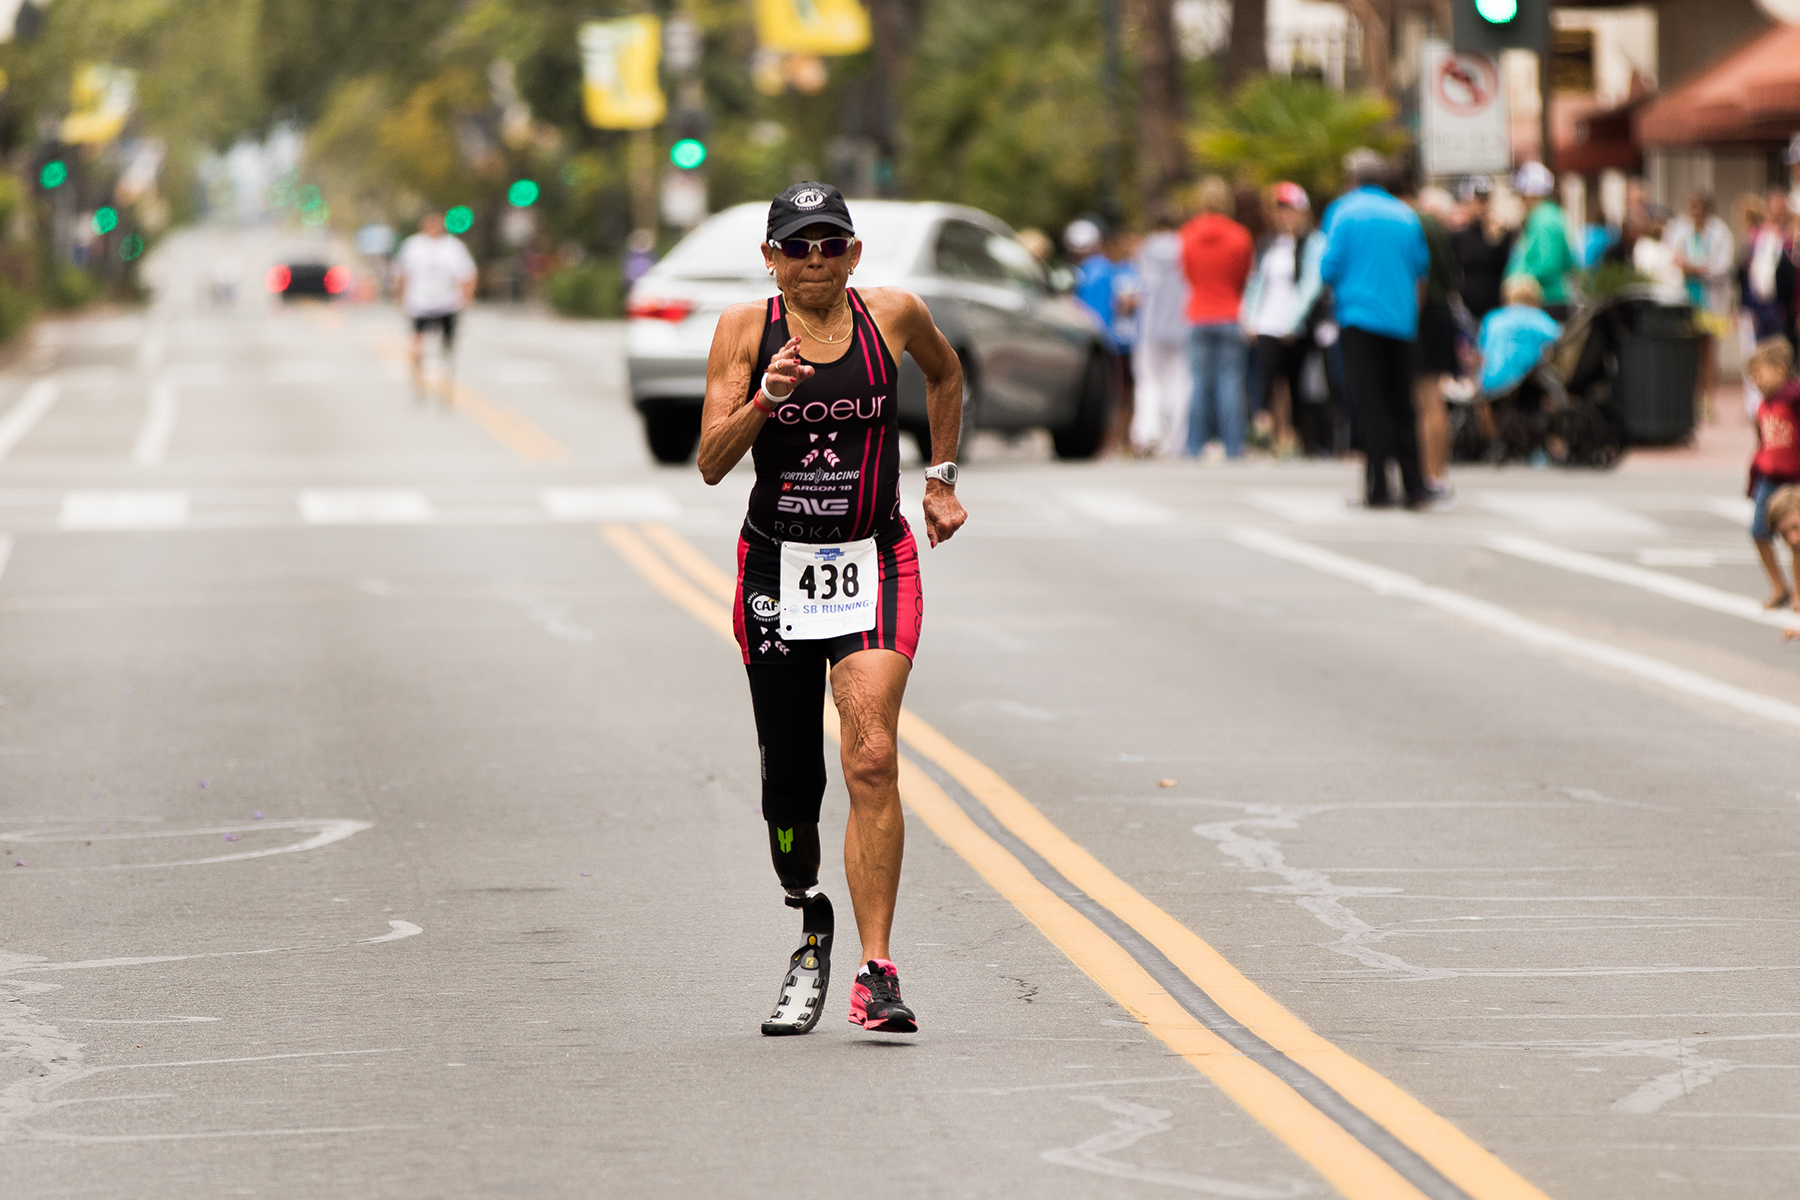 With a time of 13:58, Karen Aydelott, 70, of San Luis Obispo finished first Amputee Athletes women's division.